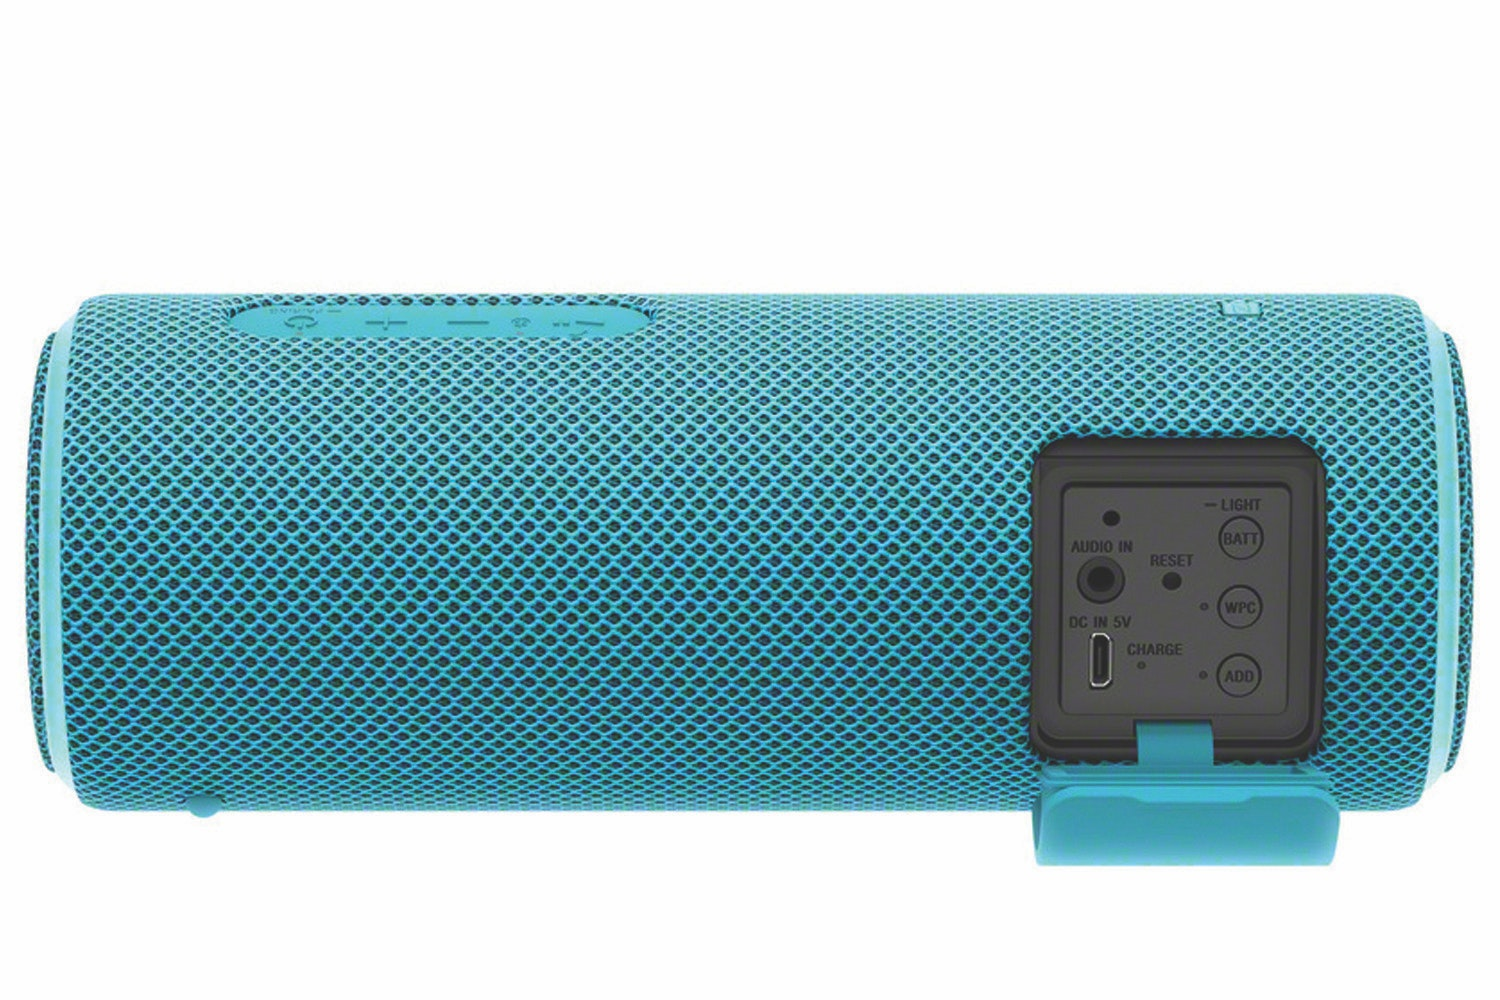 Sony SRSXB21L.CE7 Portable Waterproof Speaker with EXTRA BASS and 12 Hours Battery Life